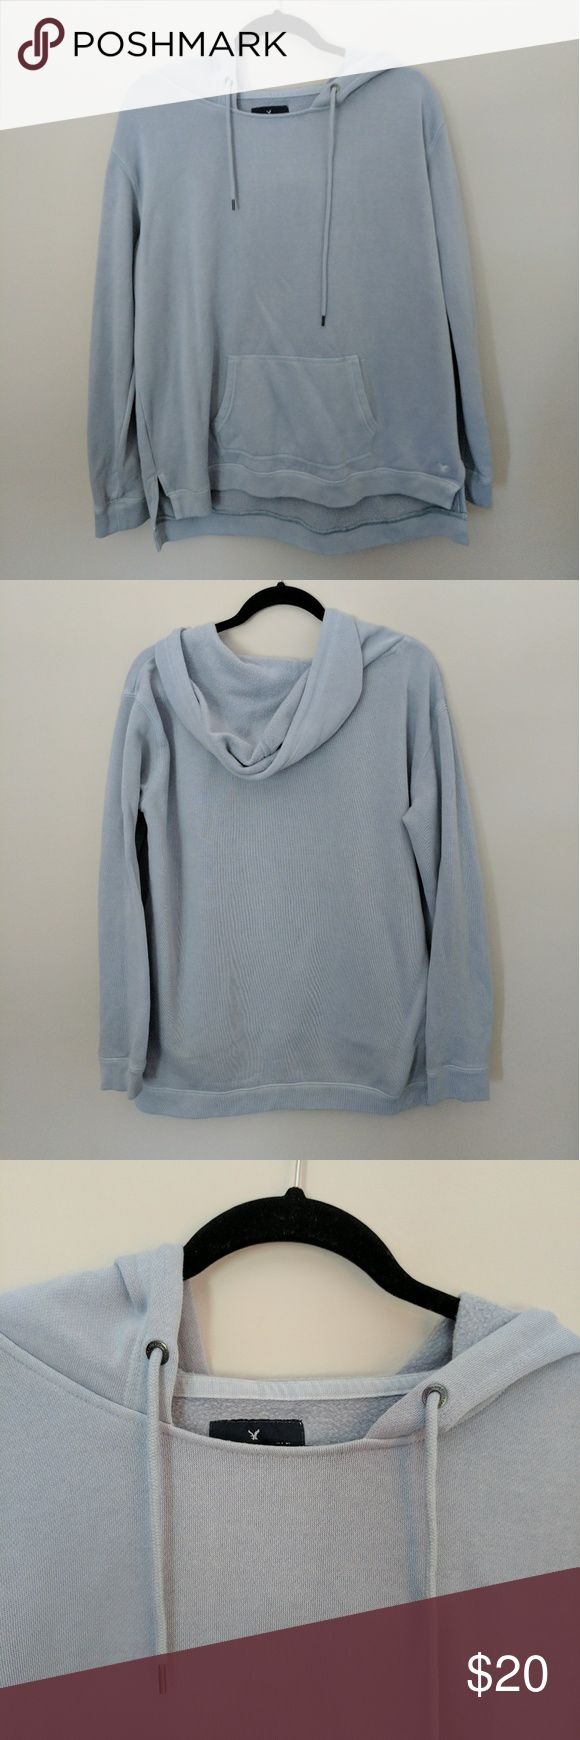 American Eagle Sweatshirt American Eagle sweatshirt in pale blue. Worn once, in new condition. American Eagle Outfitters Tops Sweatshirts & Hoodies